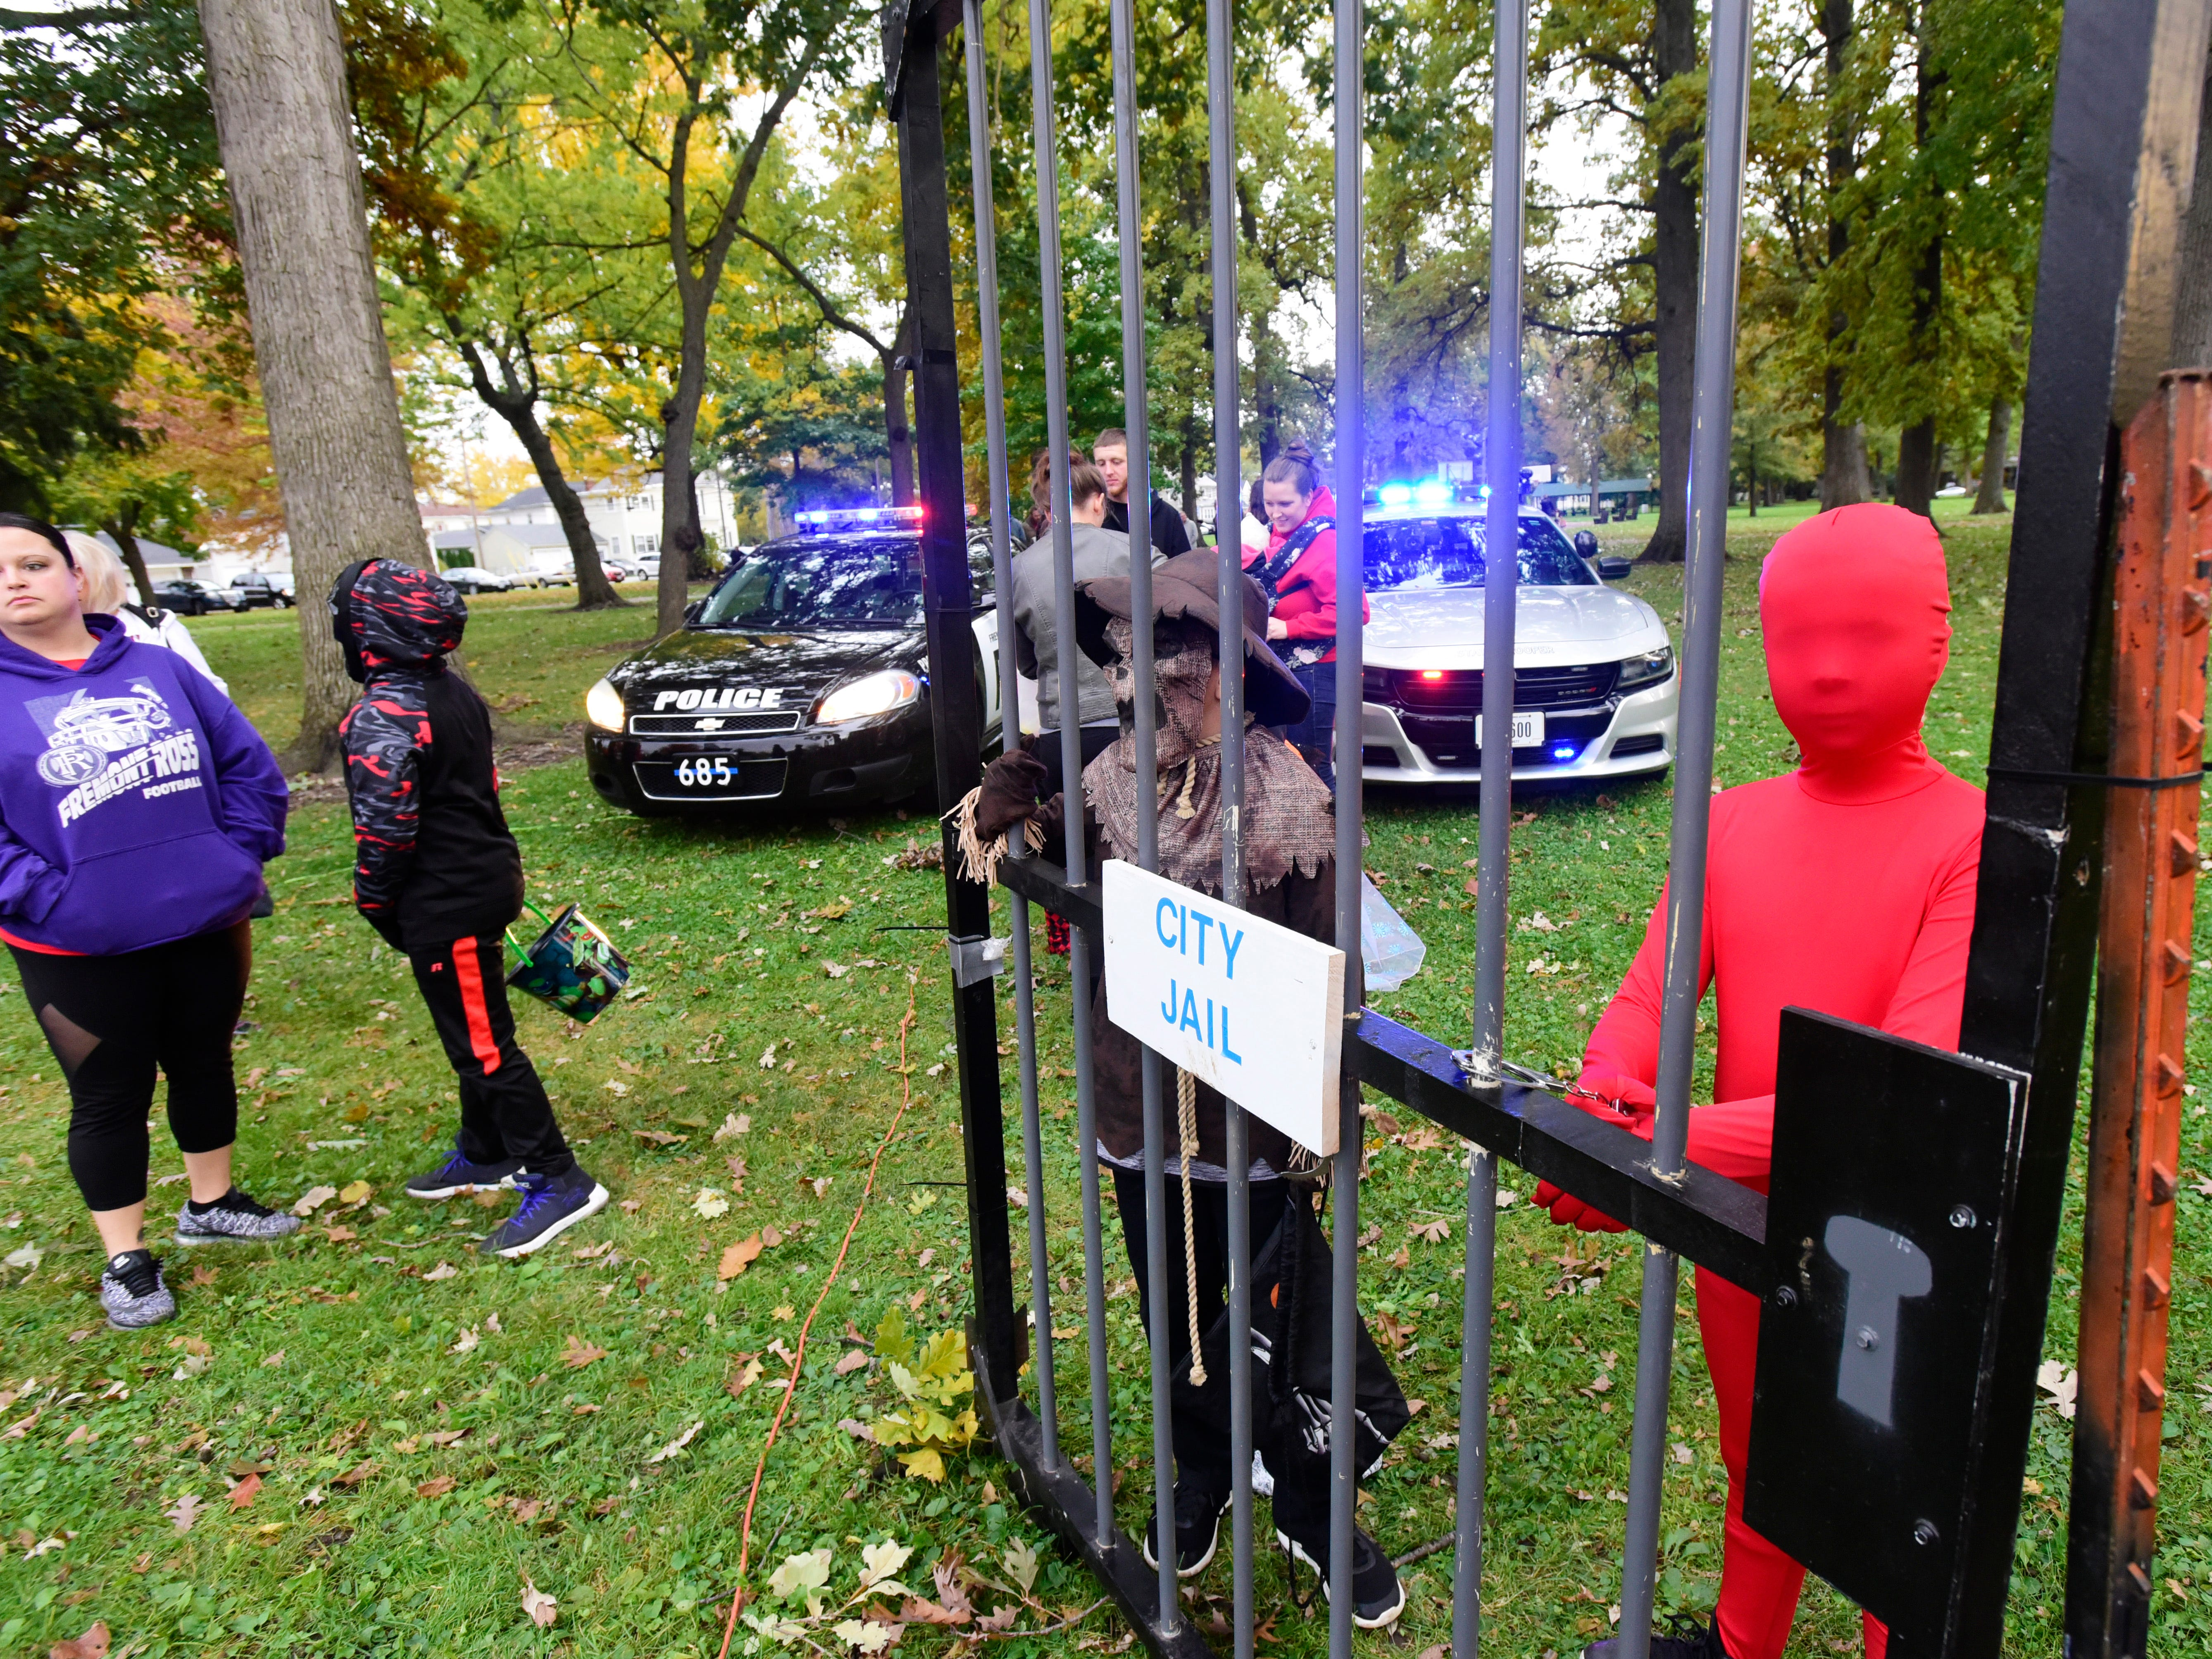 Trick-or-treaters get goodies during Candy with the Cops at Birchard Park on Tuesday evening.